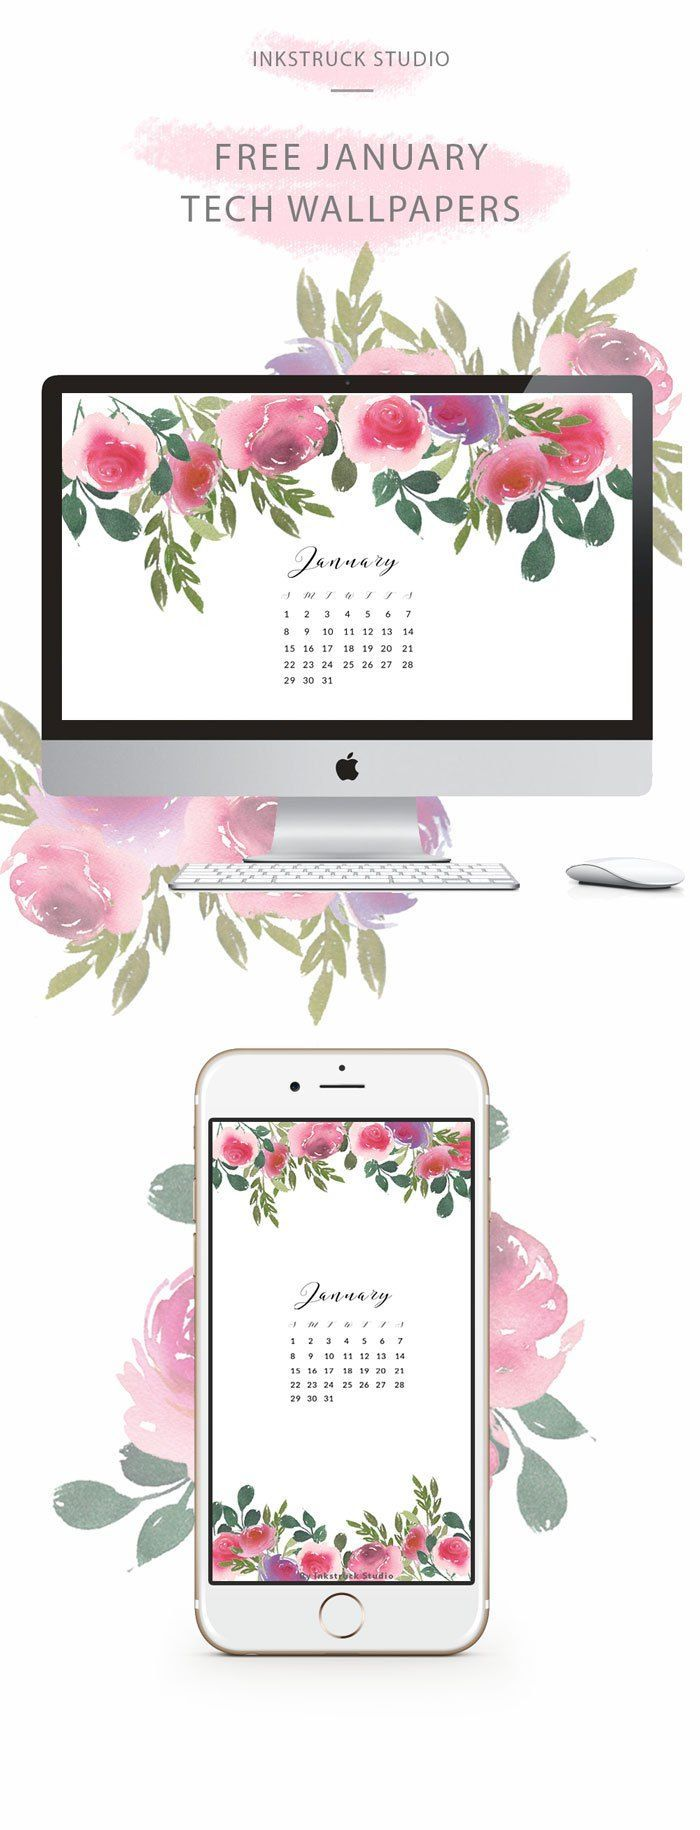 Free watercolor floral wallpaper for the month of January. Get free watercolor tech wallpapers every month! Click to know how - http://www.inkstruck.com